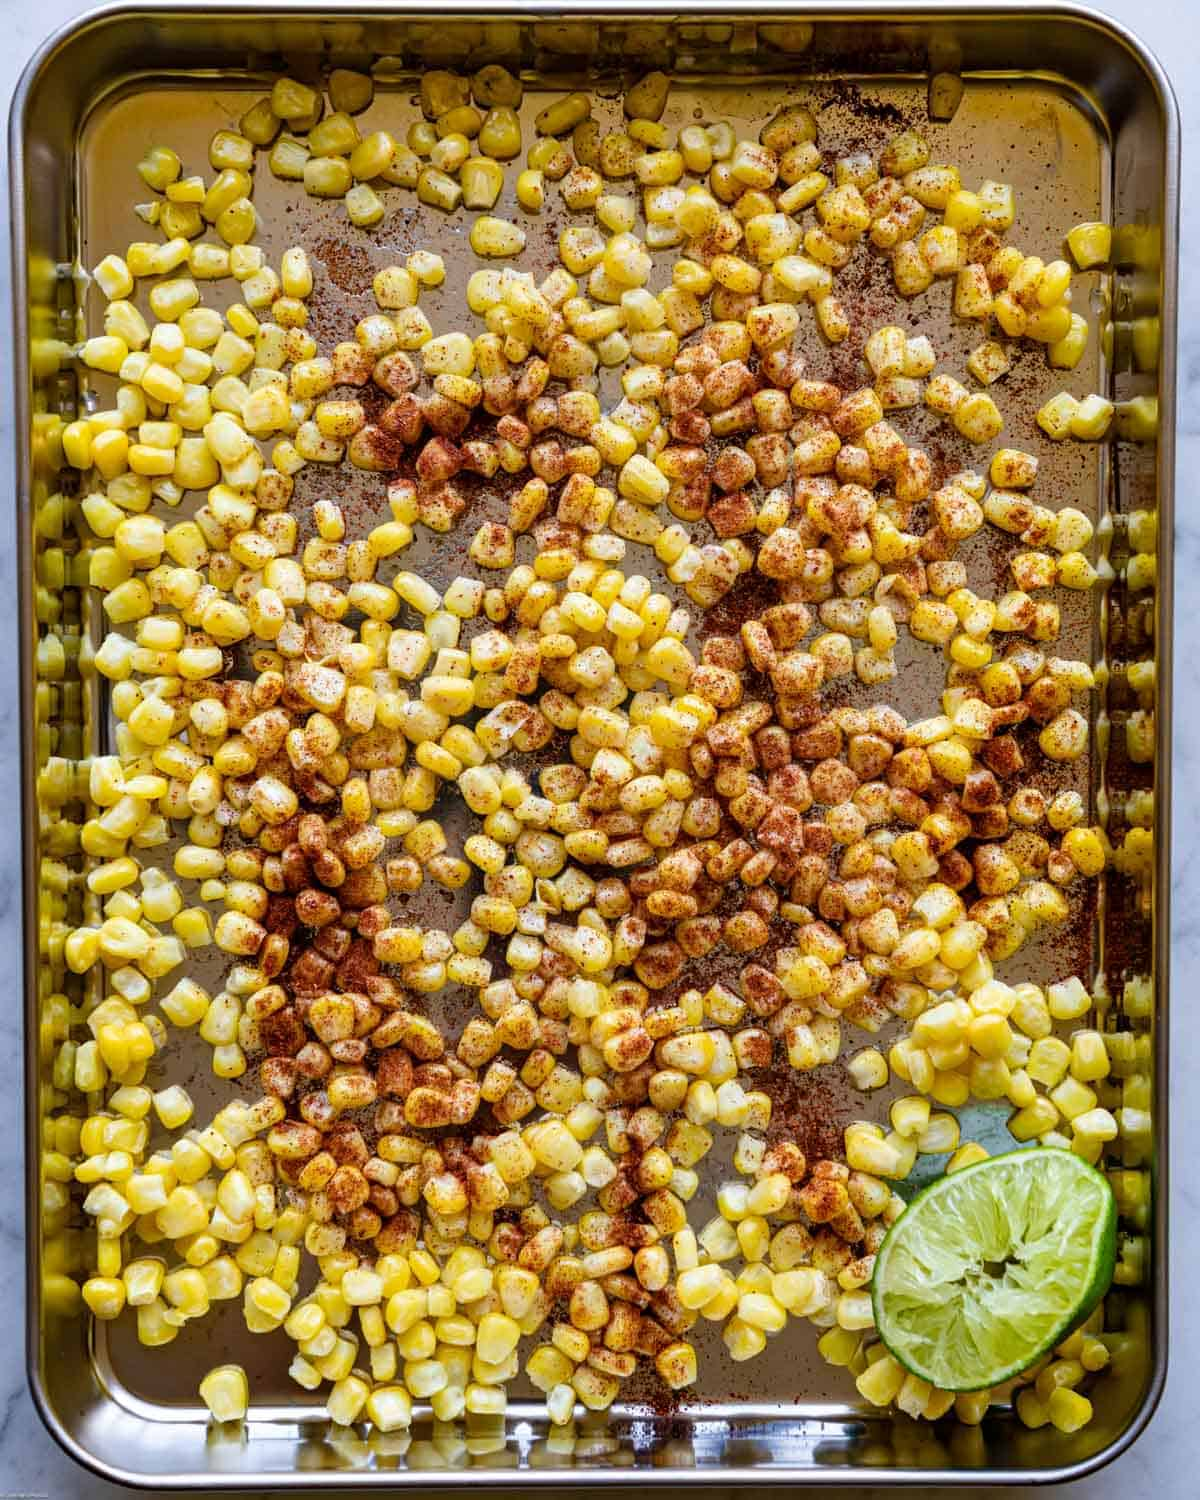 Sweet corn kernels with fresh lime juice, and chili powder.